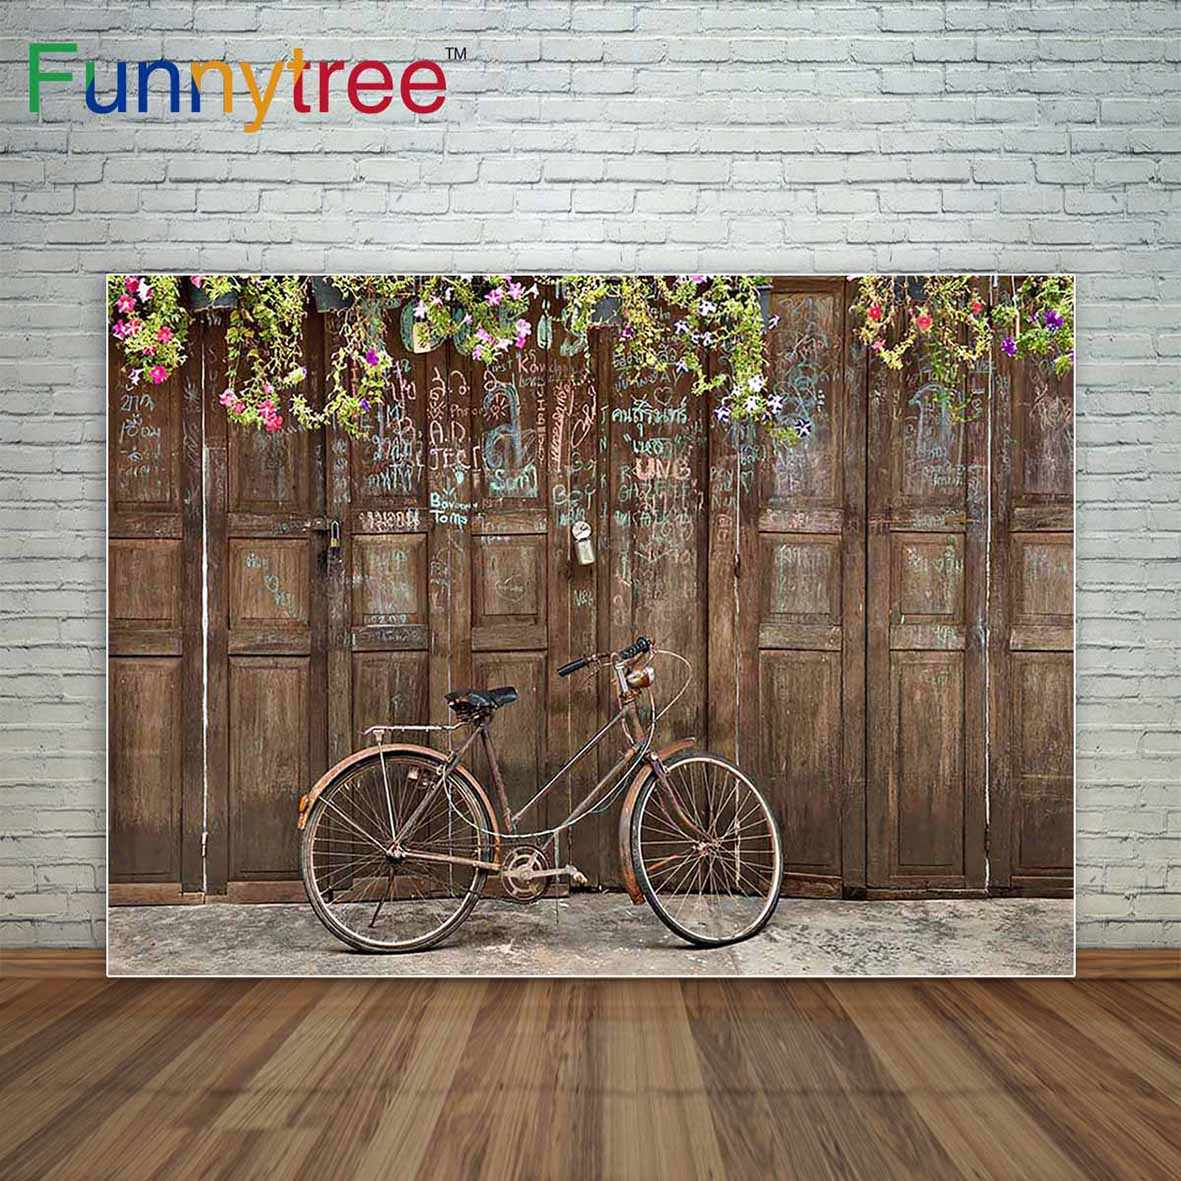 8x8FT Vinyl Backdrop Photographer,Bicycle,Retro Colorful Bikes Background for Baby Birthday Party Wedding Studio Props Photography